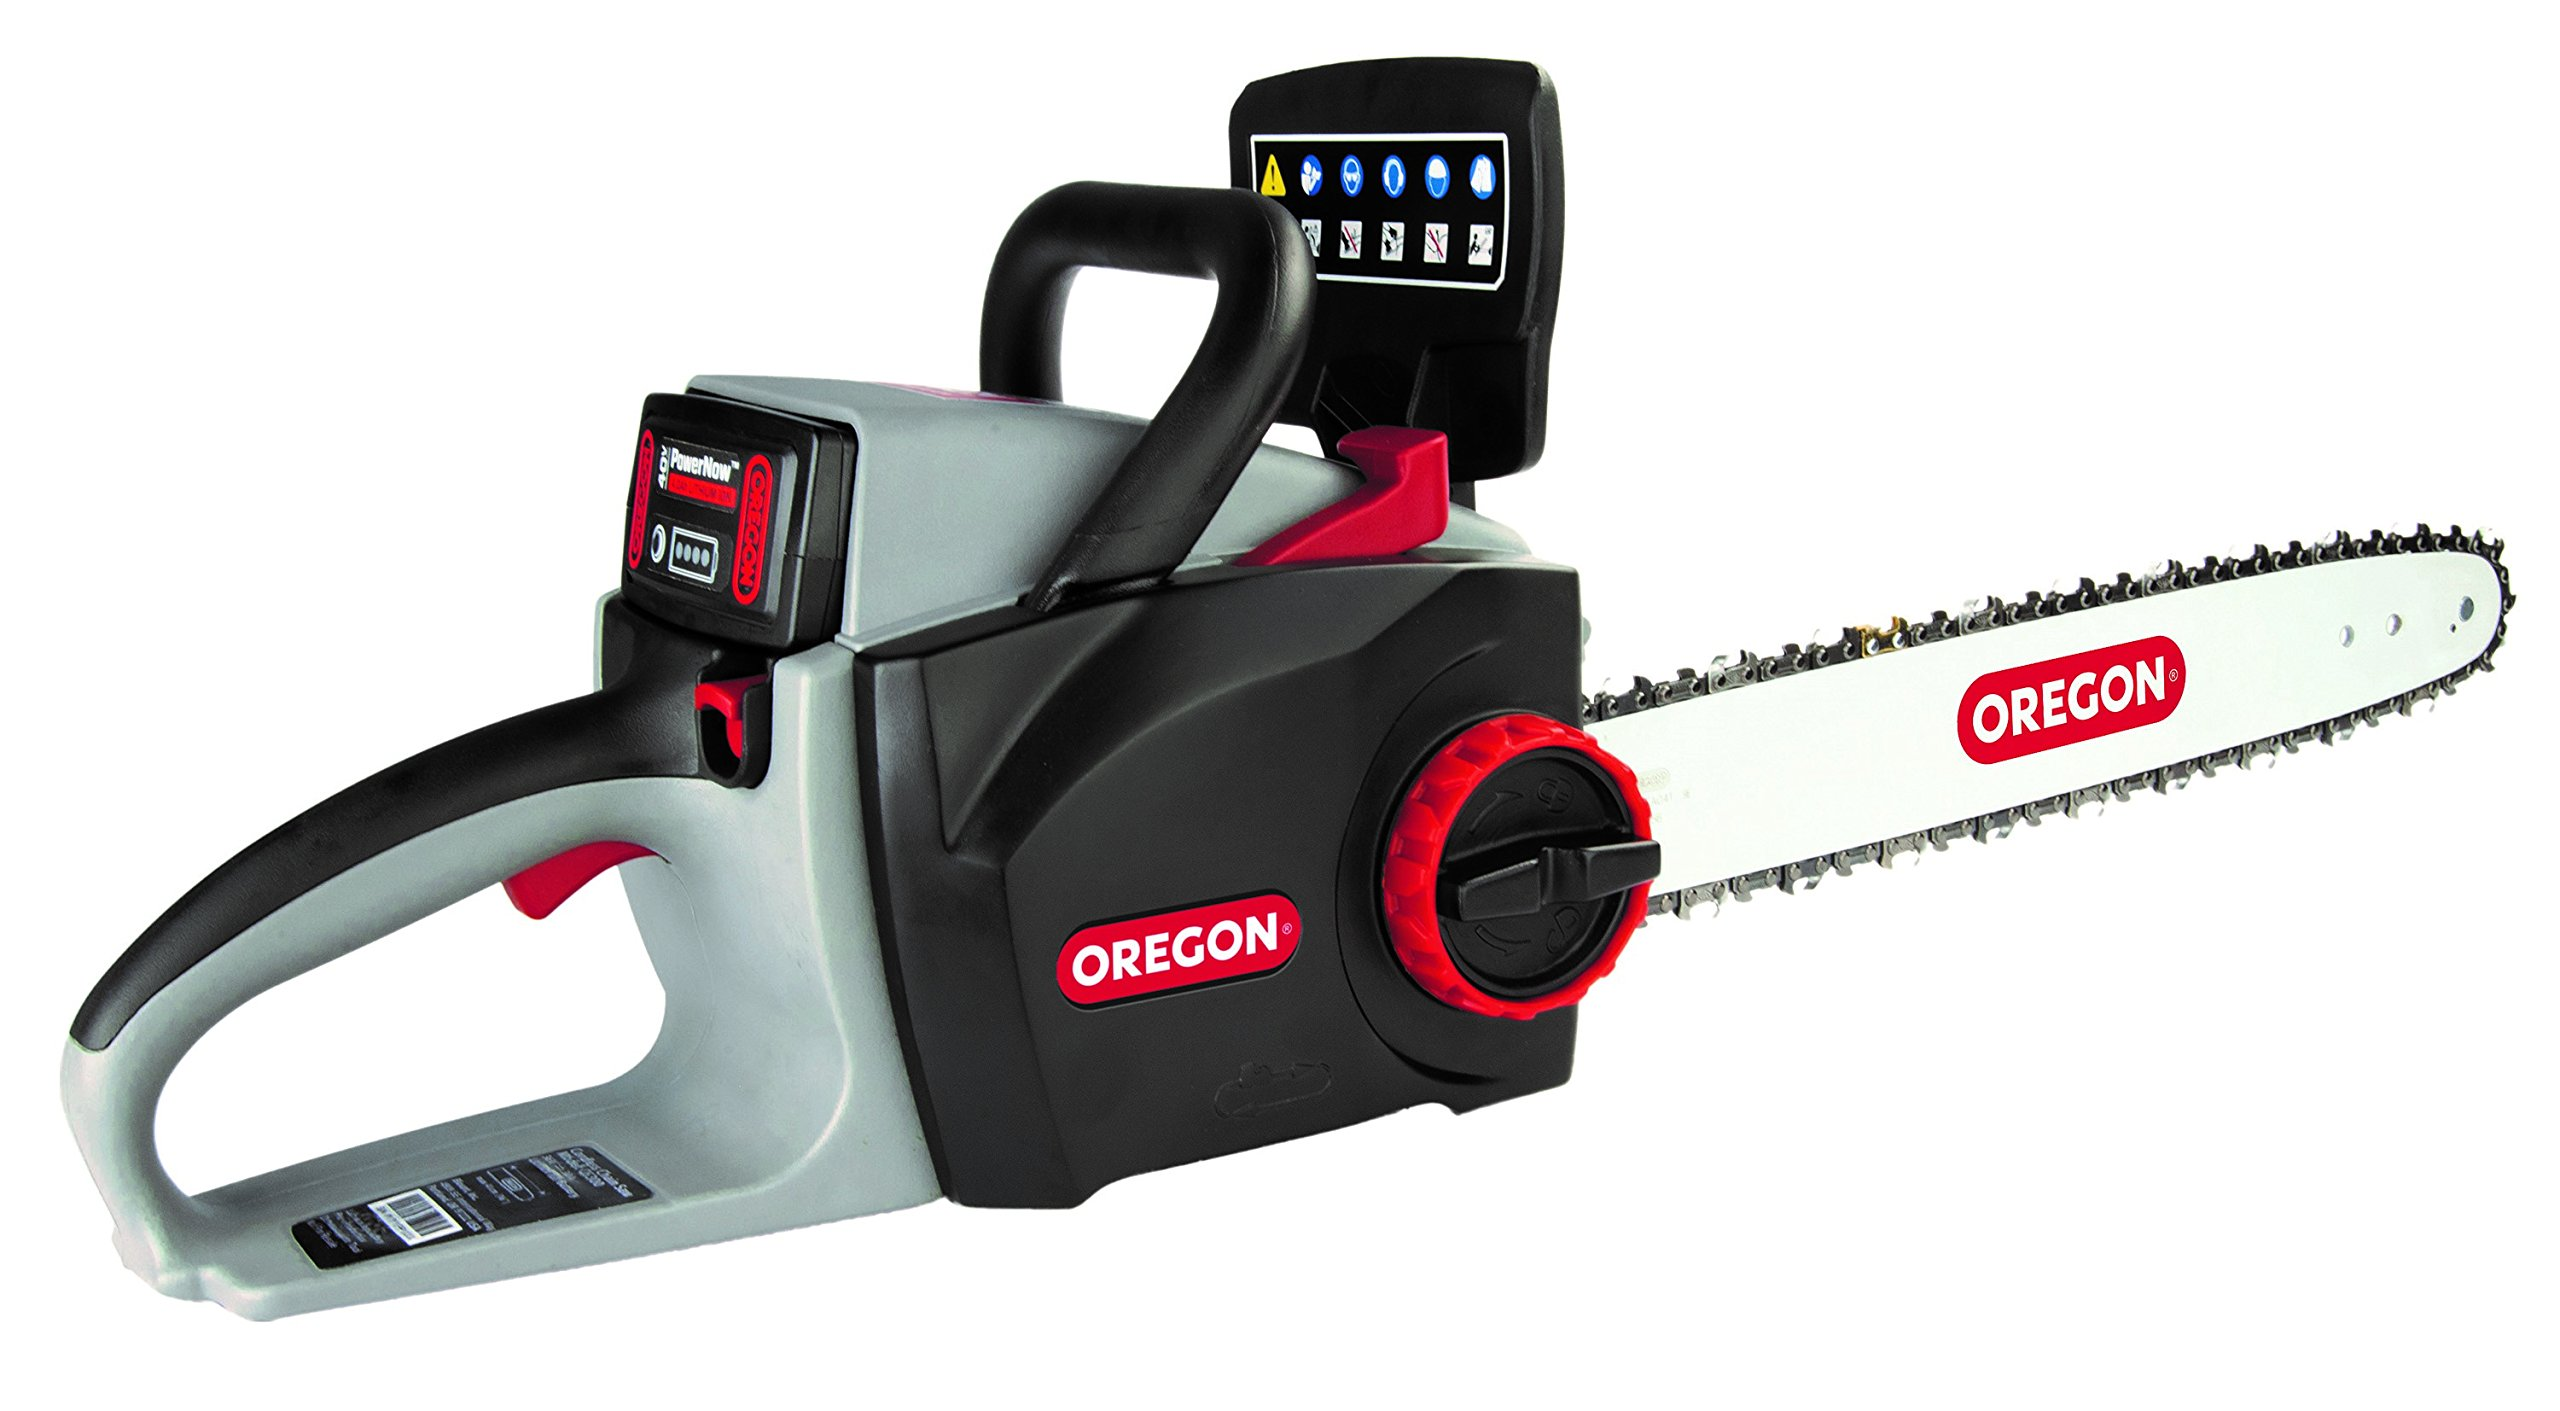 Oregon Cordless CS300-R7 Chainsaw Kit with 6.0 Ah Battery Pack and Rapid Charger